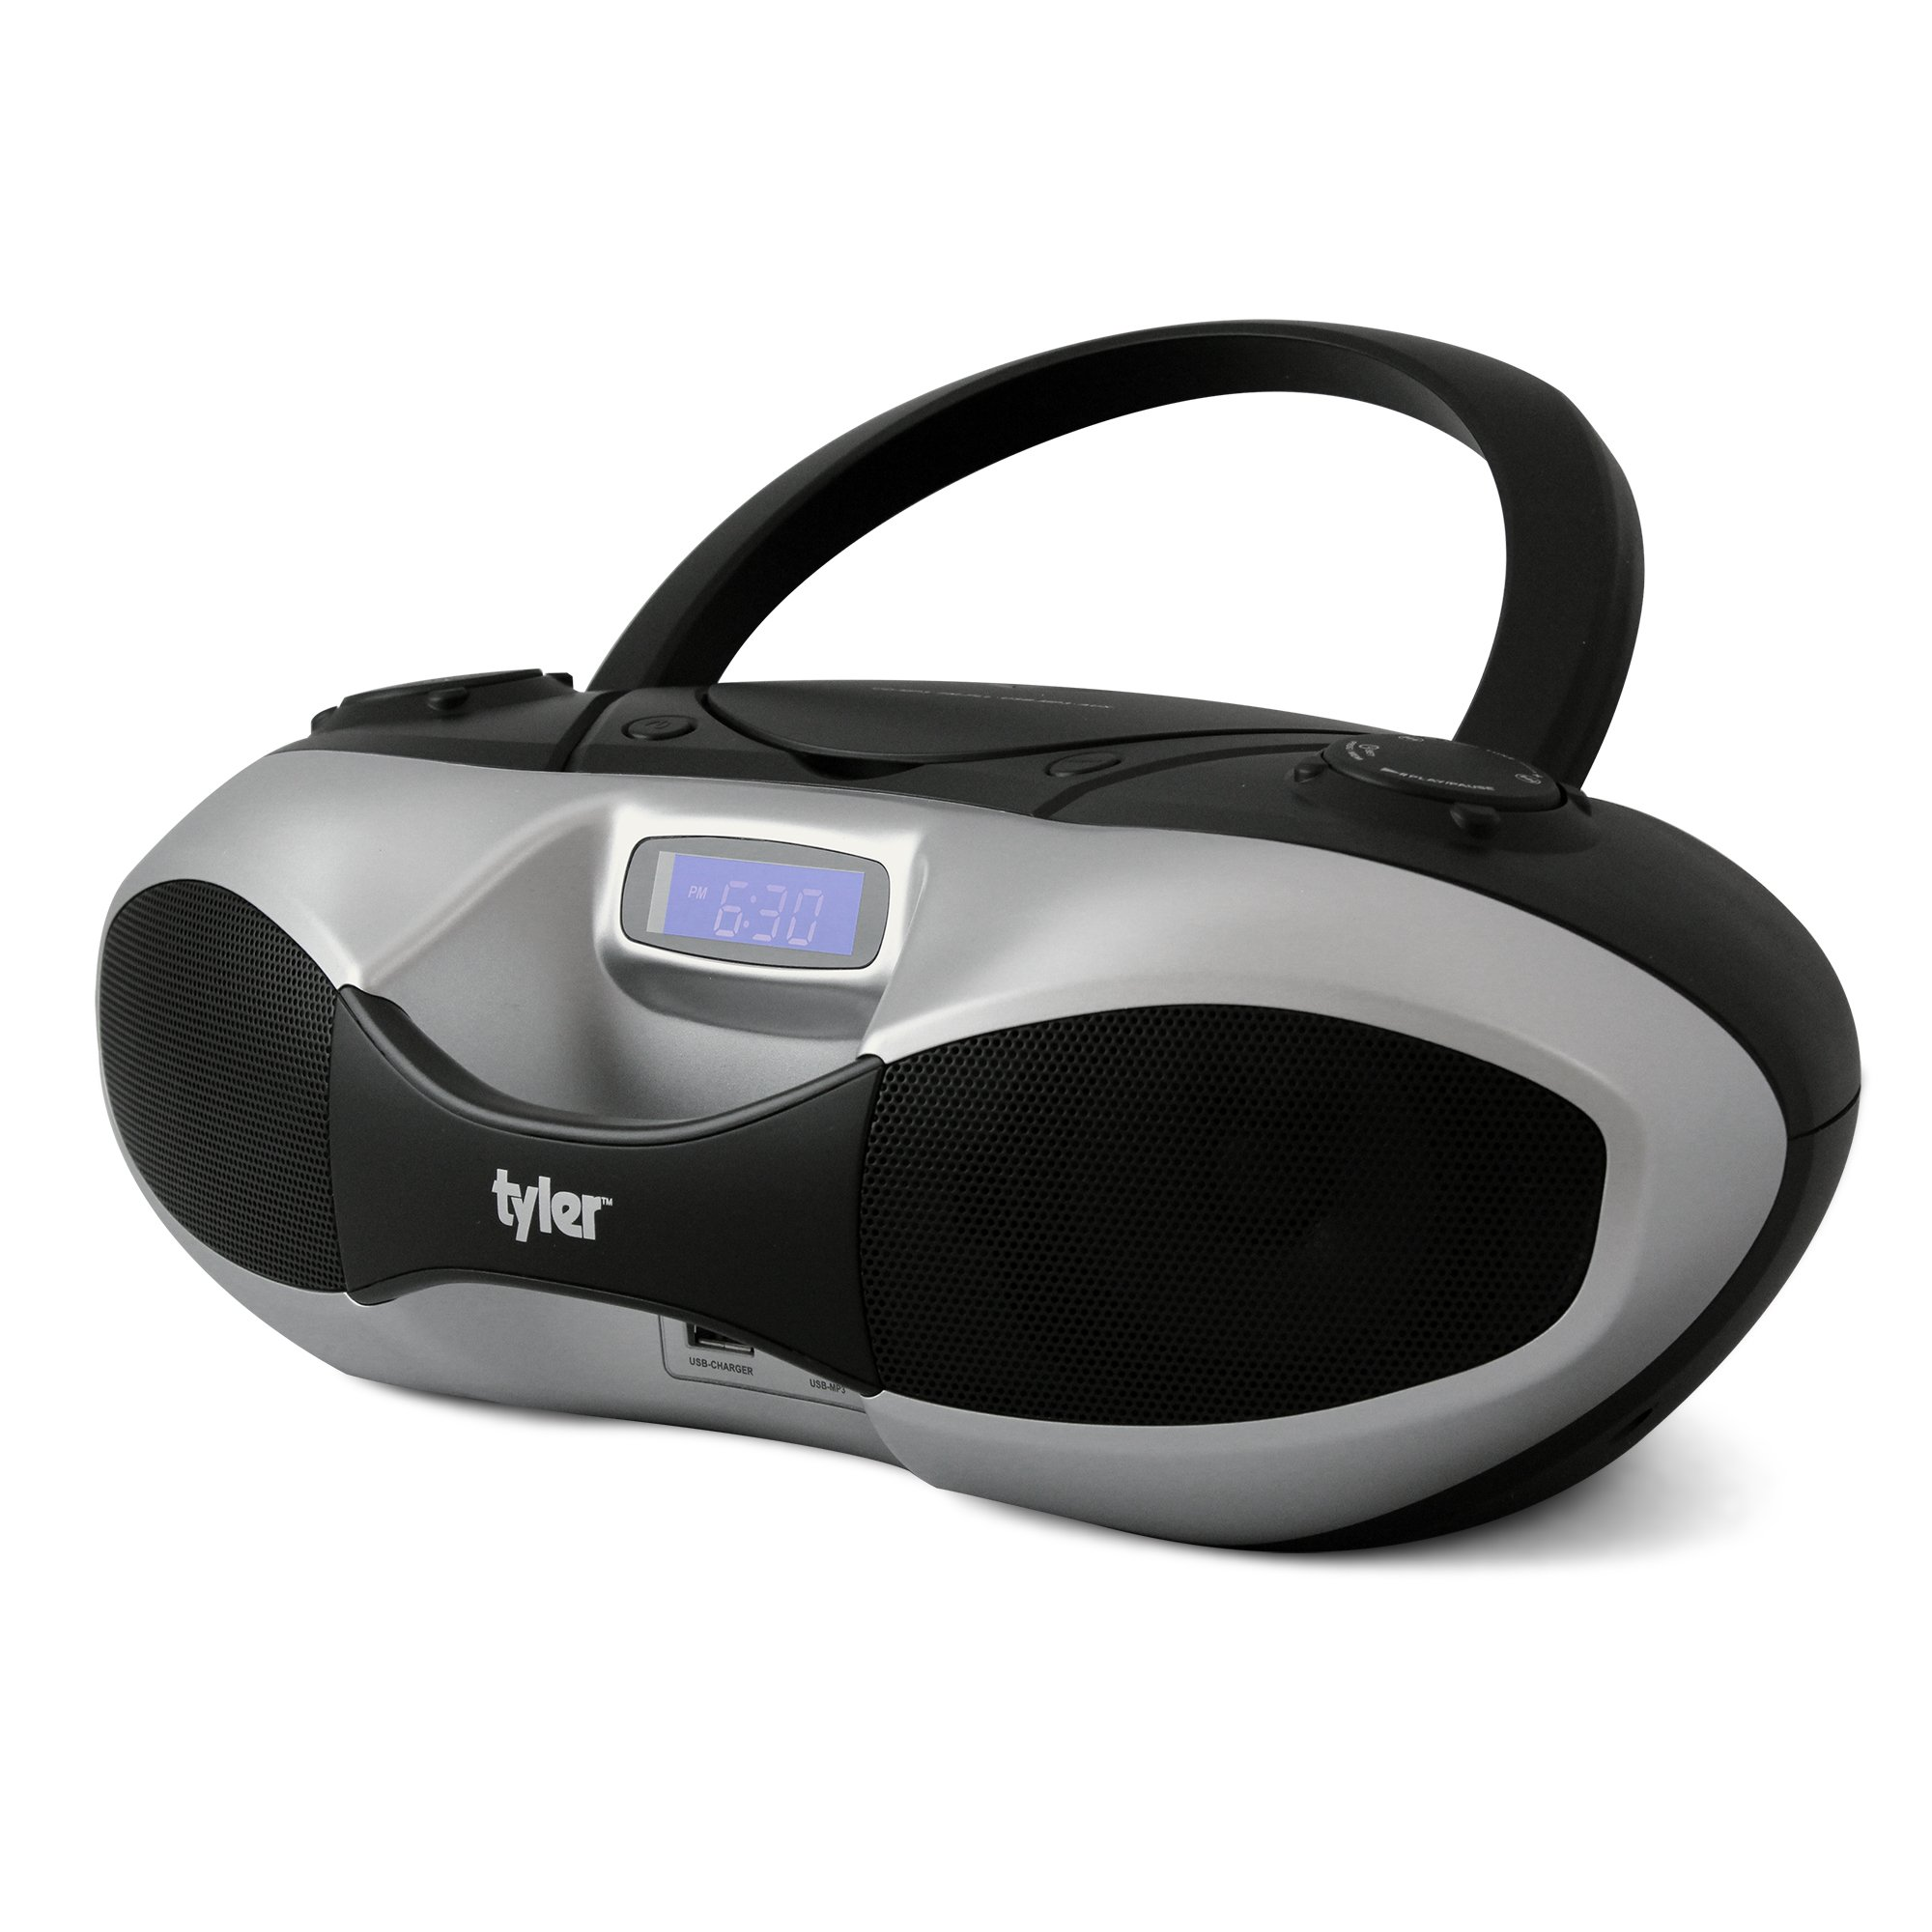 Tyler Portable Sport Stereo MP3/CD Boombox Player TAU104-SL with USB Charging Port for Phones and Tablets, USB MP3 Input, FM Radio | Silver |